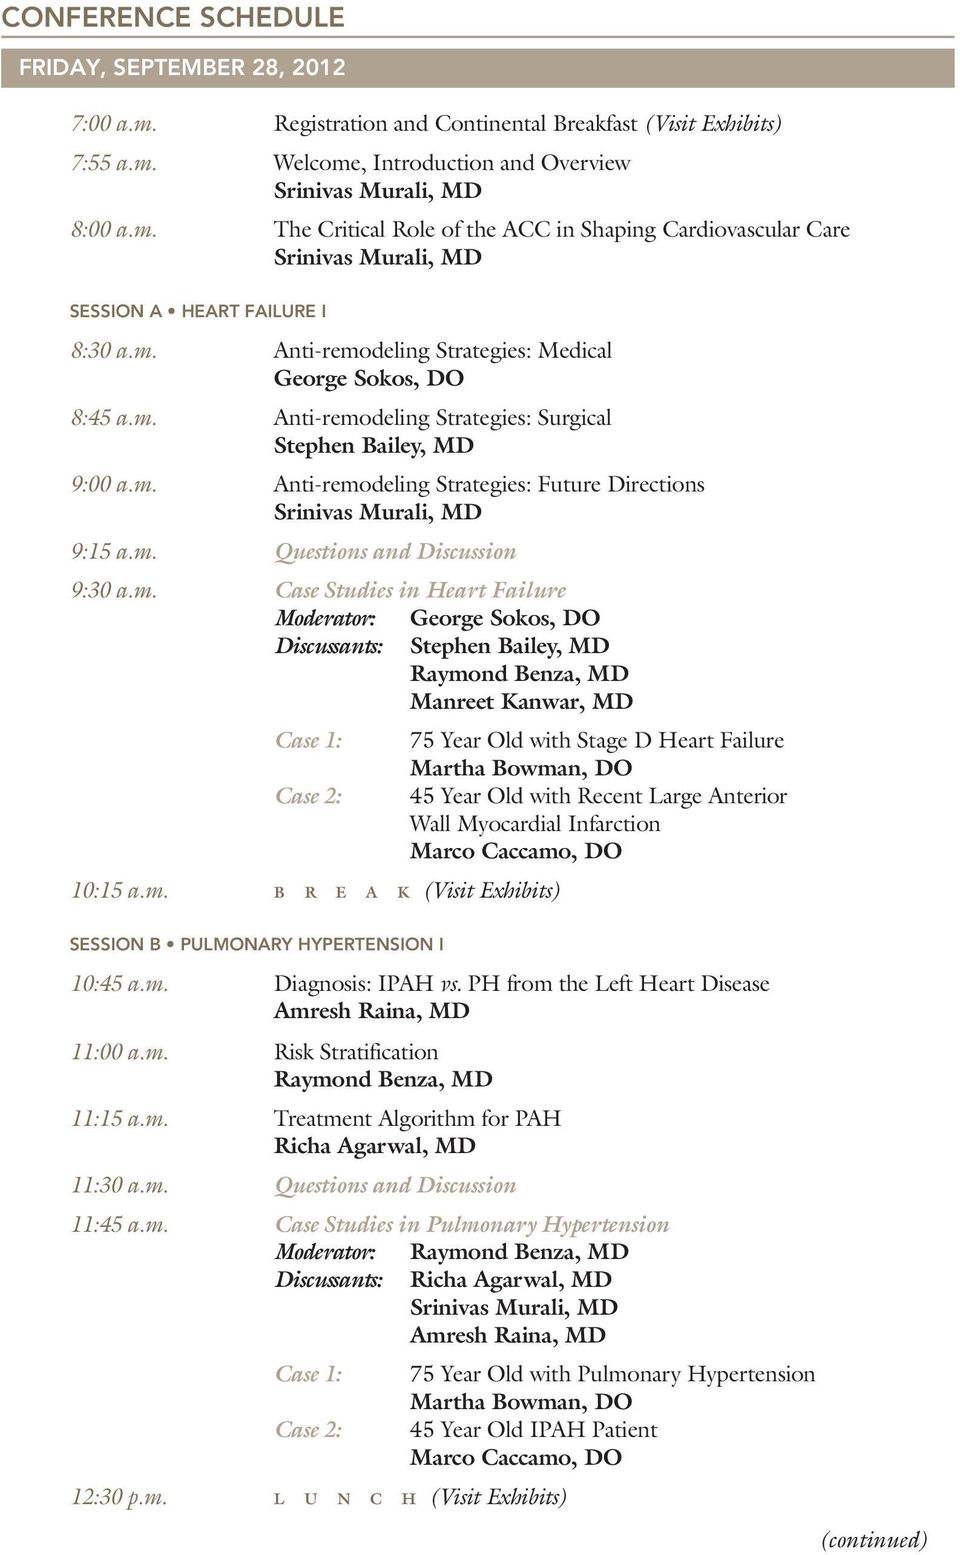 m. Questions and Discussion 9:30 a.m. Case Studies in Heart Failure Moderator: Discussants: George Sokos, DO Stephen Bailey, MD Manreet Kanwar, MD Case 1: 75 Year Old with Stage D Heart Failure